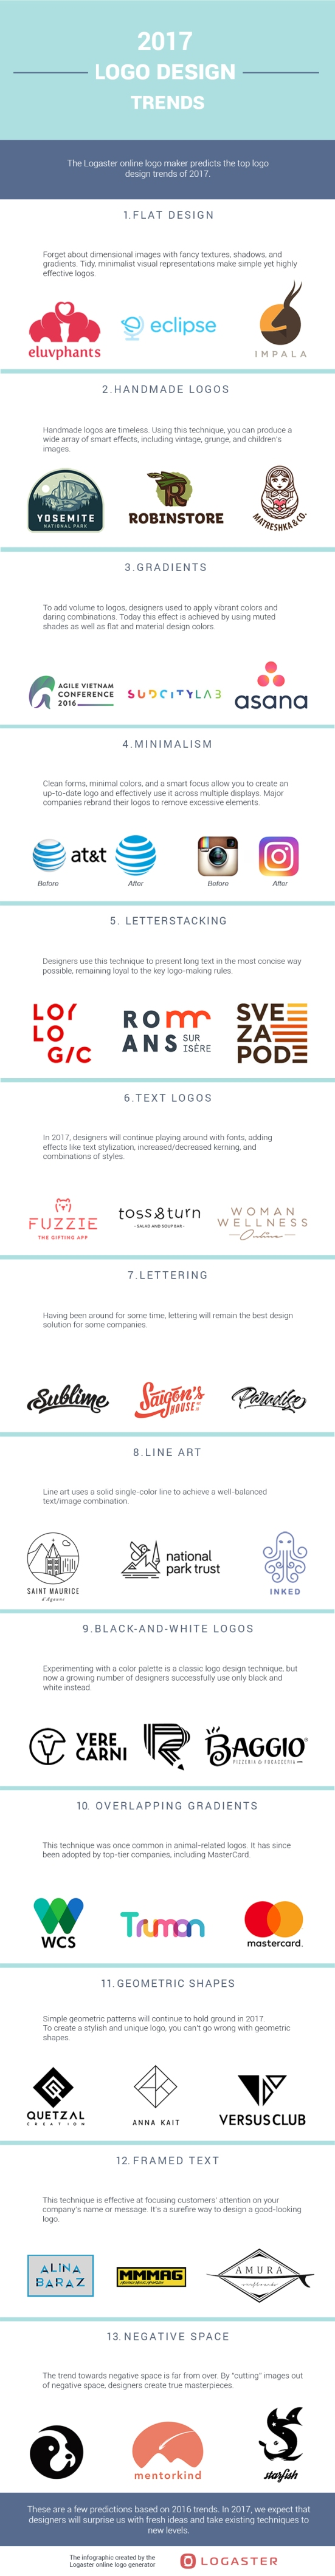 Logo-Design-Trends-for-2017-Is-Your-Logo-Up-to-Date-1